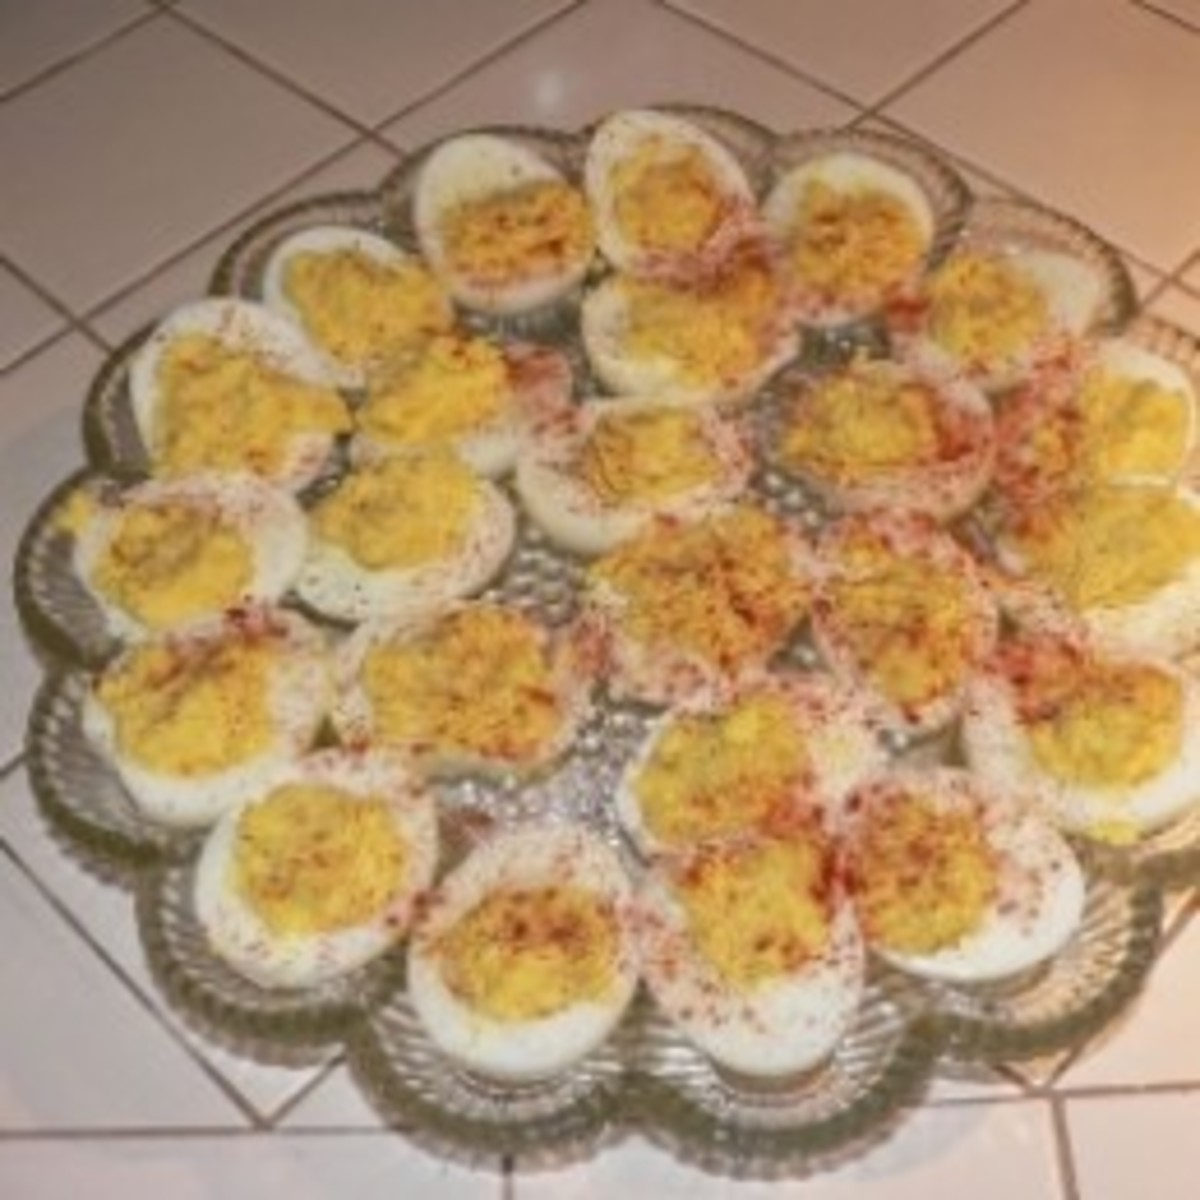 can-hard-boiled-eggs-really-explode